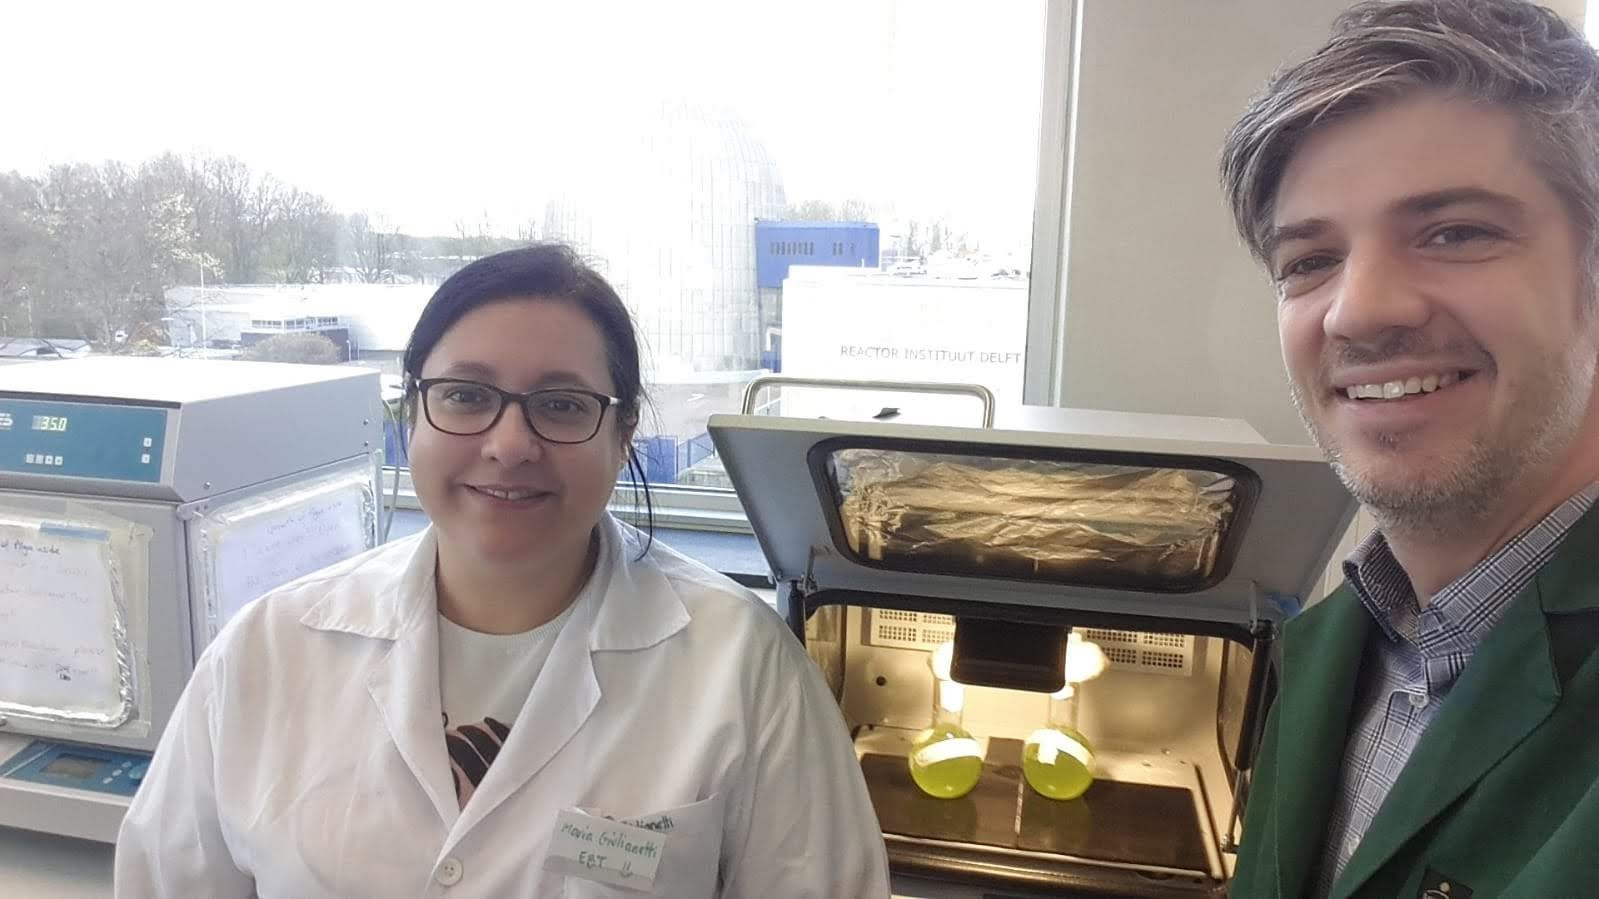 Maria Paula Giulianetti de Almeida (left) and David Weissbrodt (right) in the laboratories of the Department of Biotechnology, Faculty of Applied Sciences, at TU Delft.